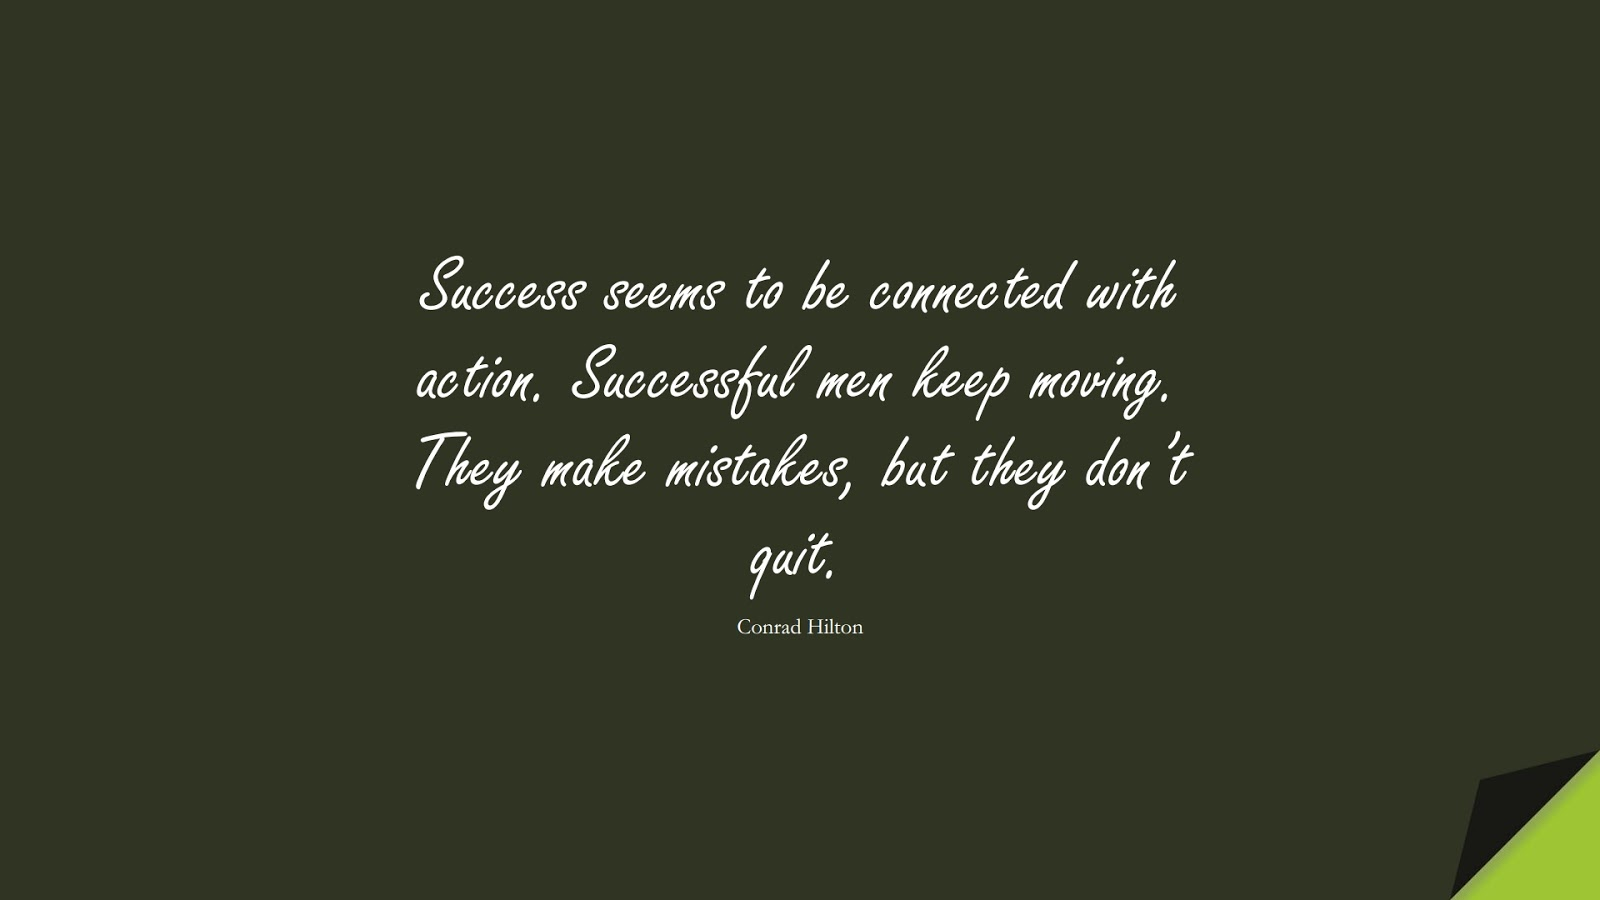 Success seems to be connected with action. Successful men keep moving. They make mistakes, but they don't quit. (Conrad Hilton);  #PerseveranceQuotes